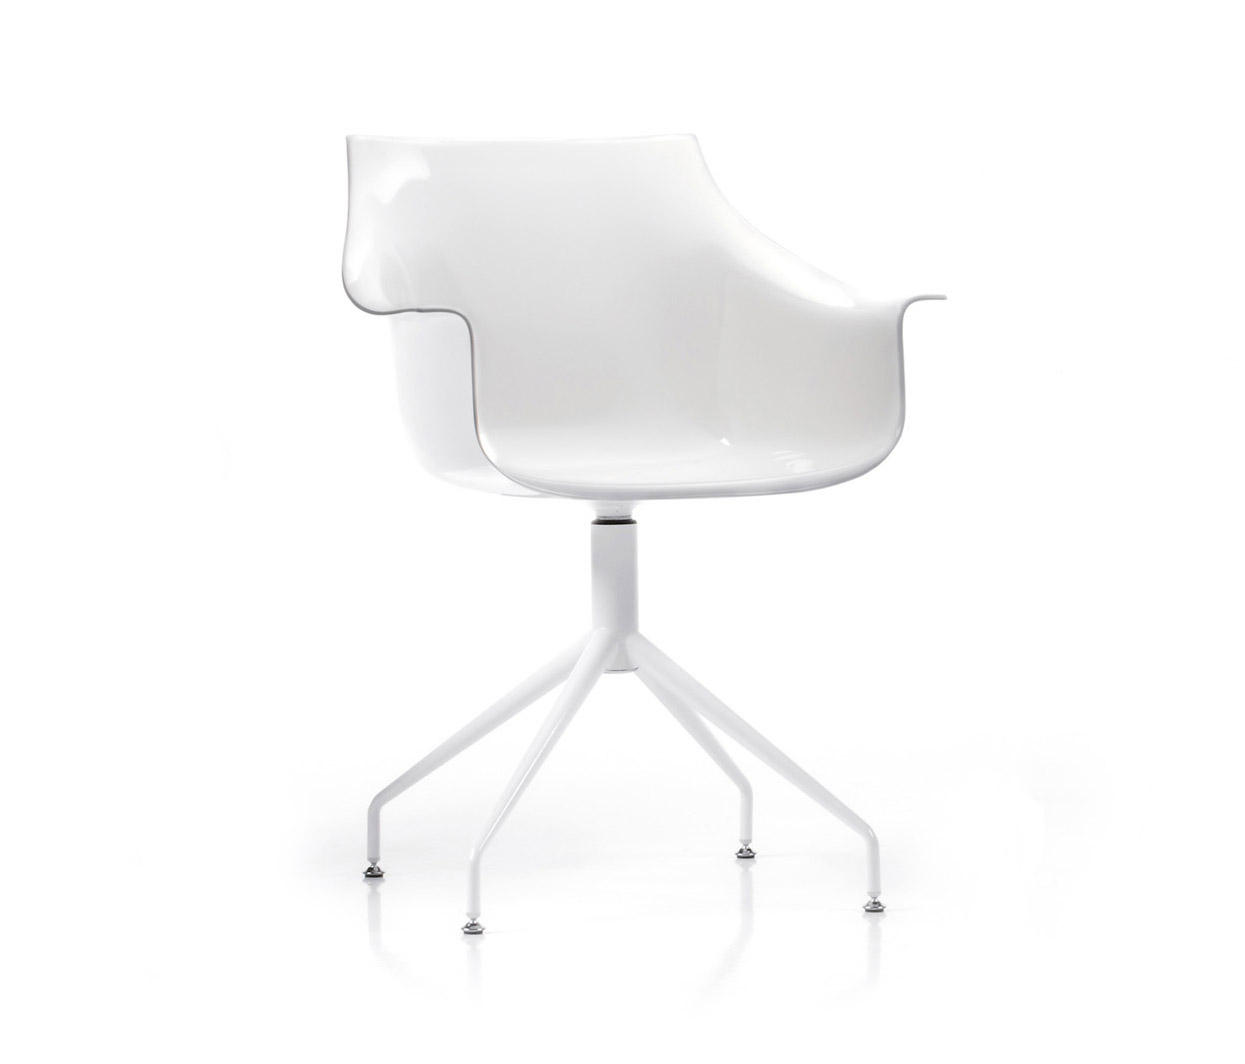 KAB  CHAIR - Chairs from Estel Group  Architonic